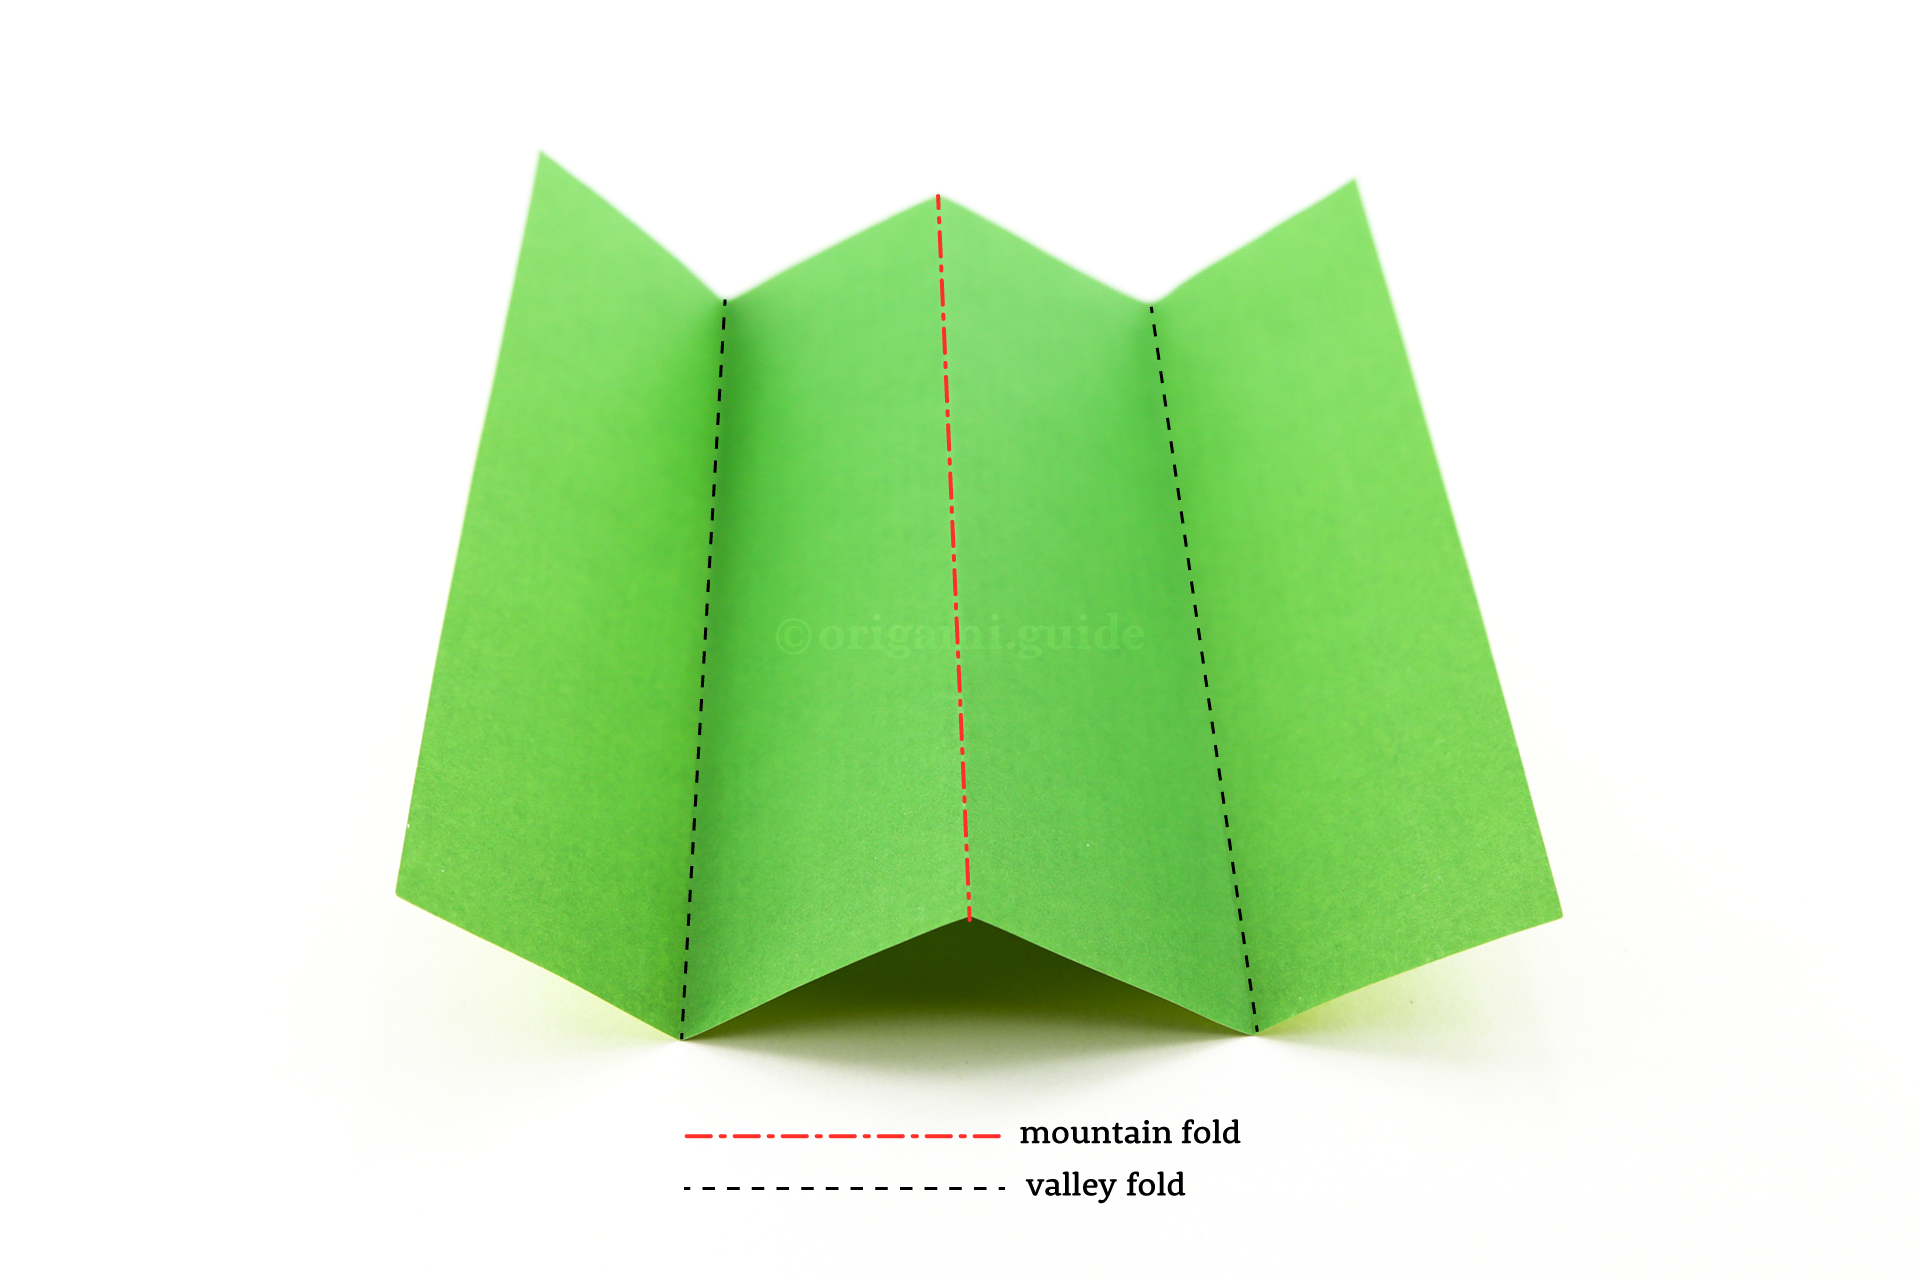 How To Make Origami Mountain & Valley Folds | Origami Guide Valley Fold on origami paper, pureland origami, miura map fold, origamic architecture, cootie catcher, chinese paper folding, mathematics of paper folding, modular origami, crease pattern, thousand origami cranes, rigid origami,